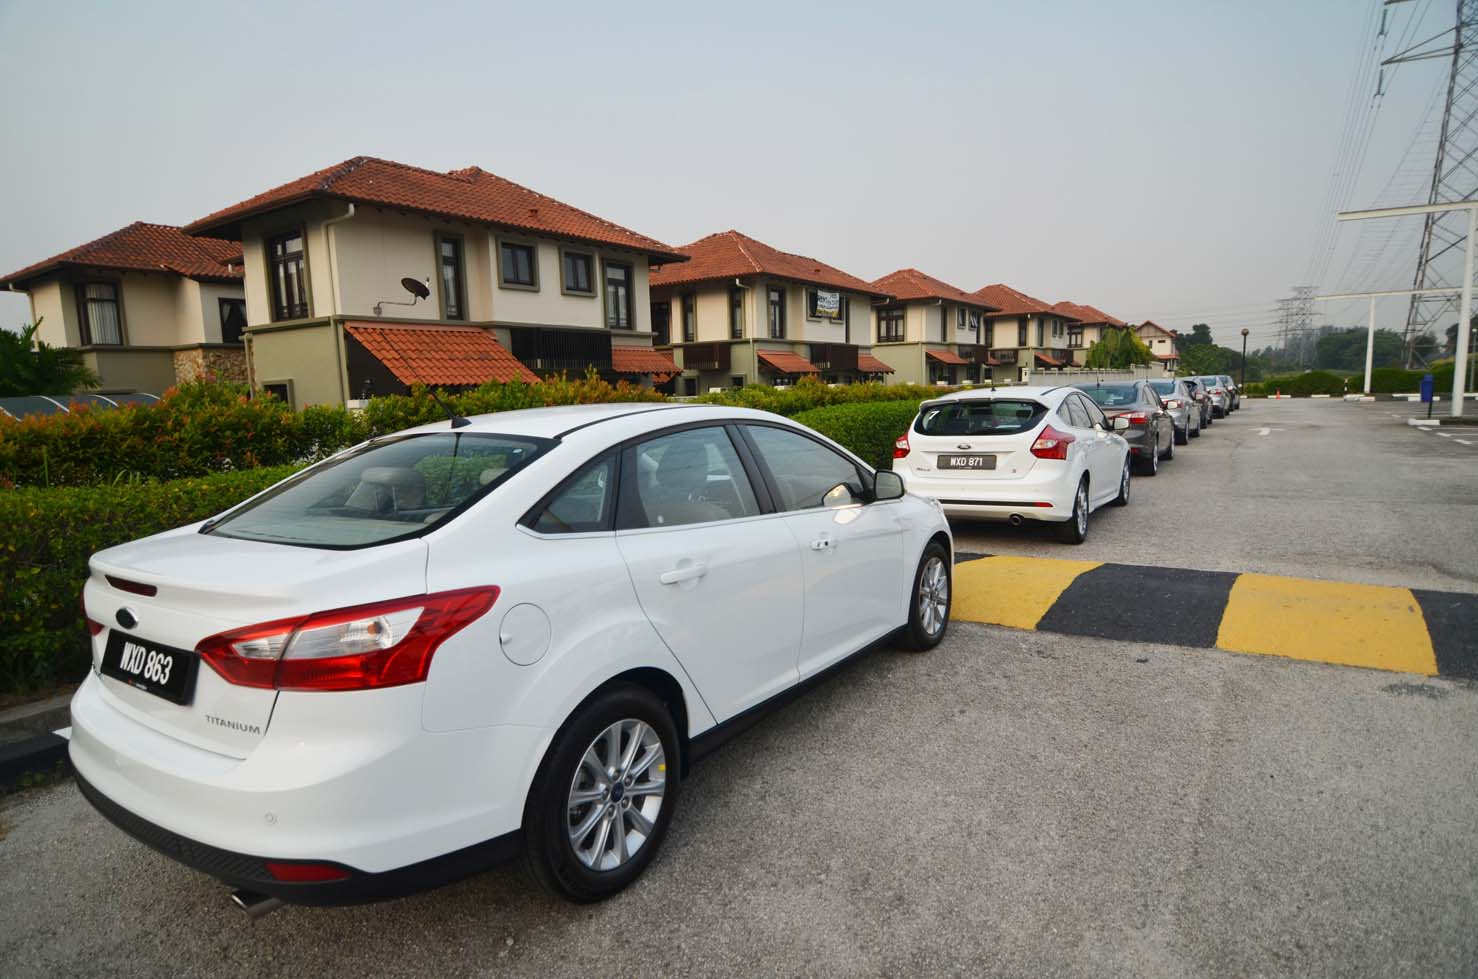 The New Ford Focus Tried And Tested Kensomuse 2012 Codes There